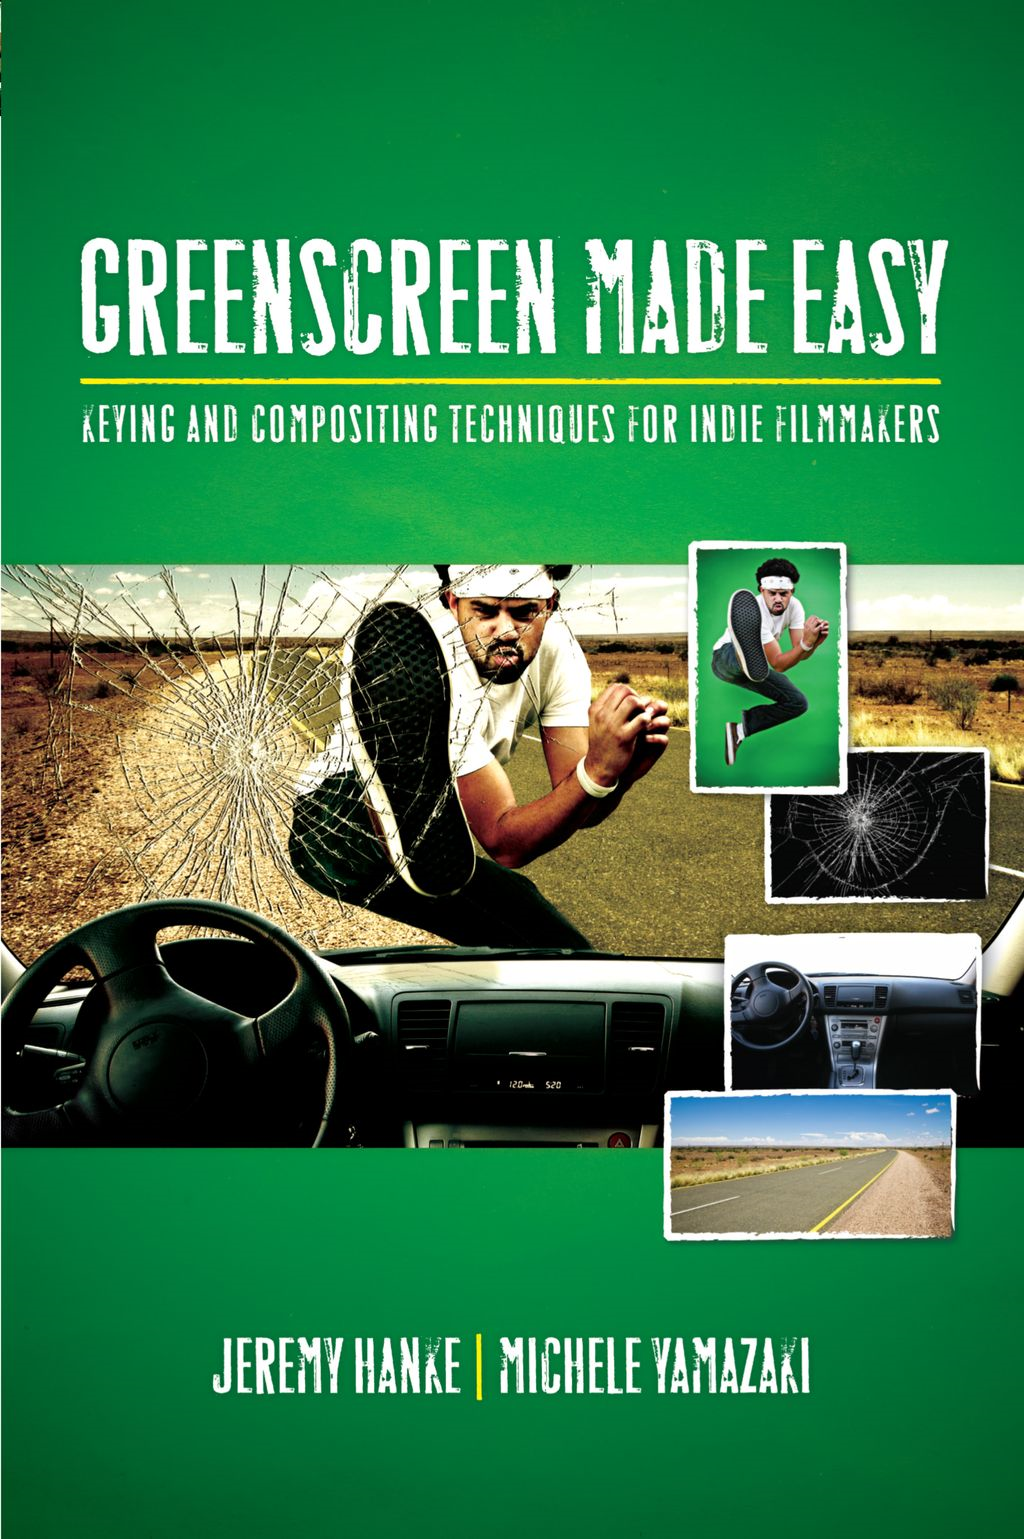 Green Screen Made Easy: Keying and Compositing Techniques for Indie Filmmakers By: Jeremy Hanke,Michele Yamazaki